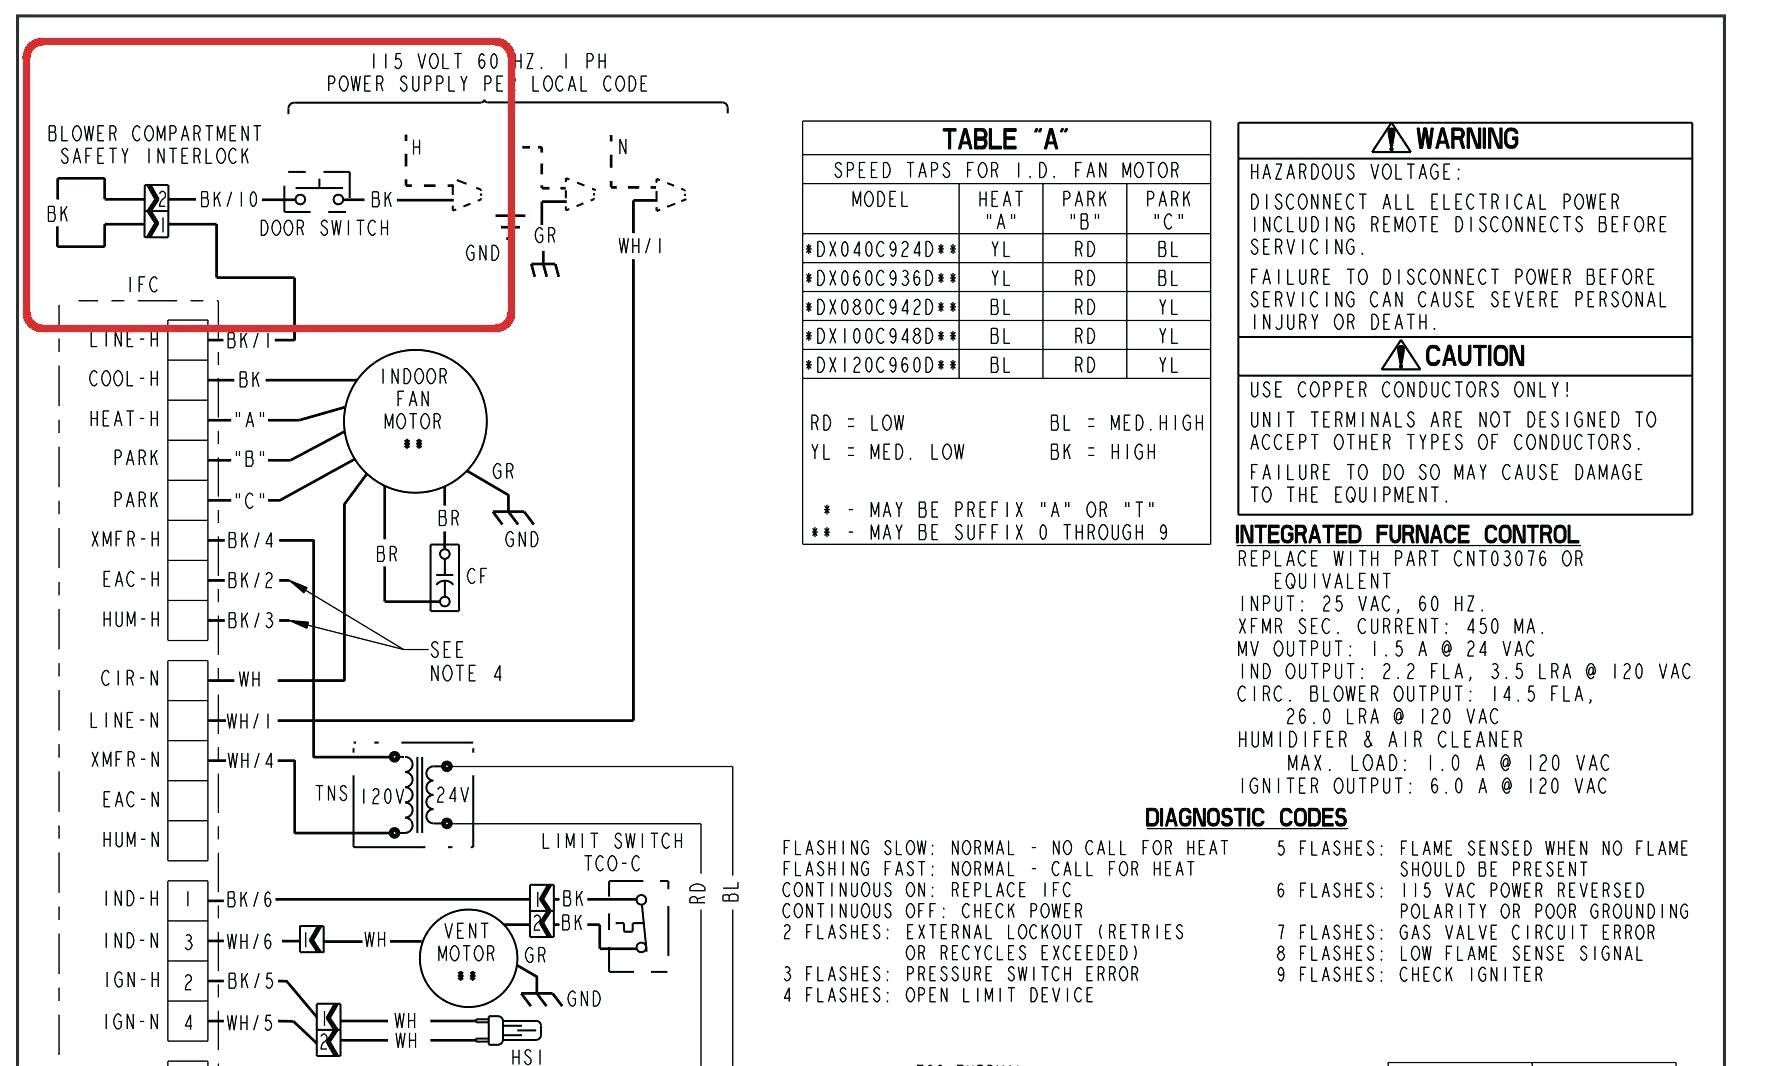 Diagram I U0026 39 M Seeking Guidance On Troubleshooting The Operation Of